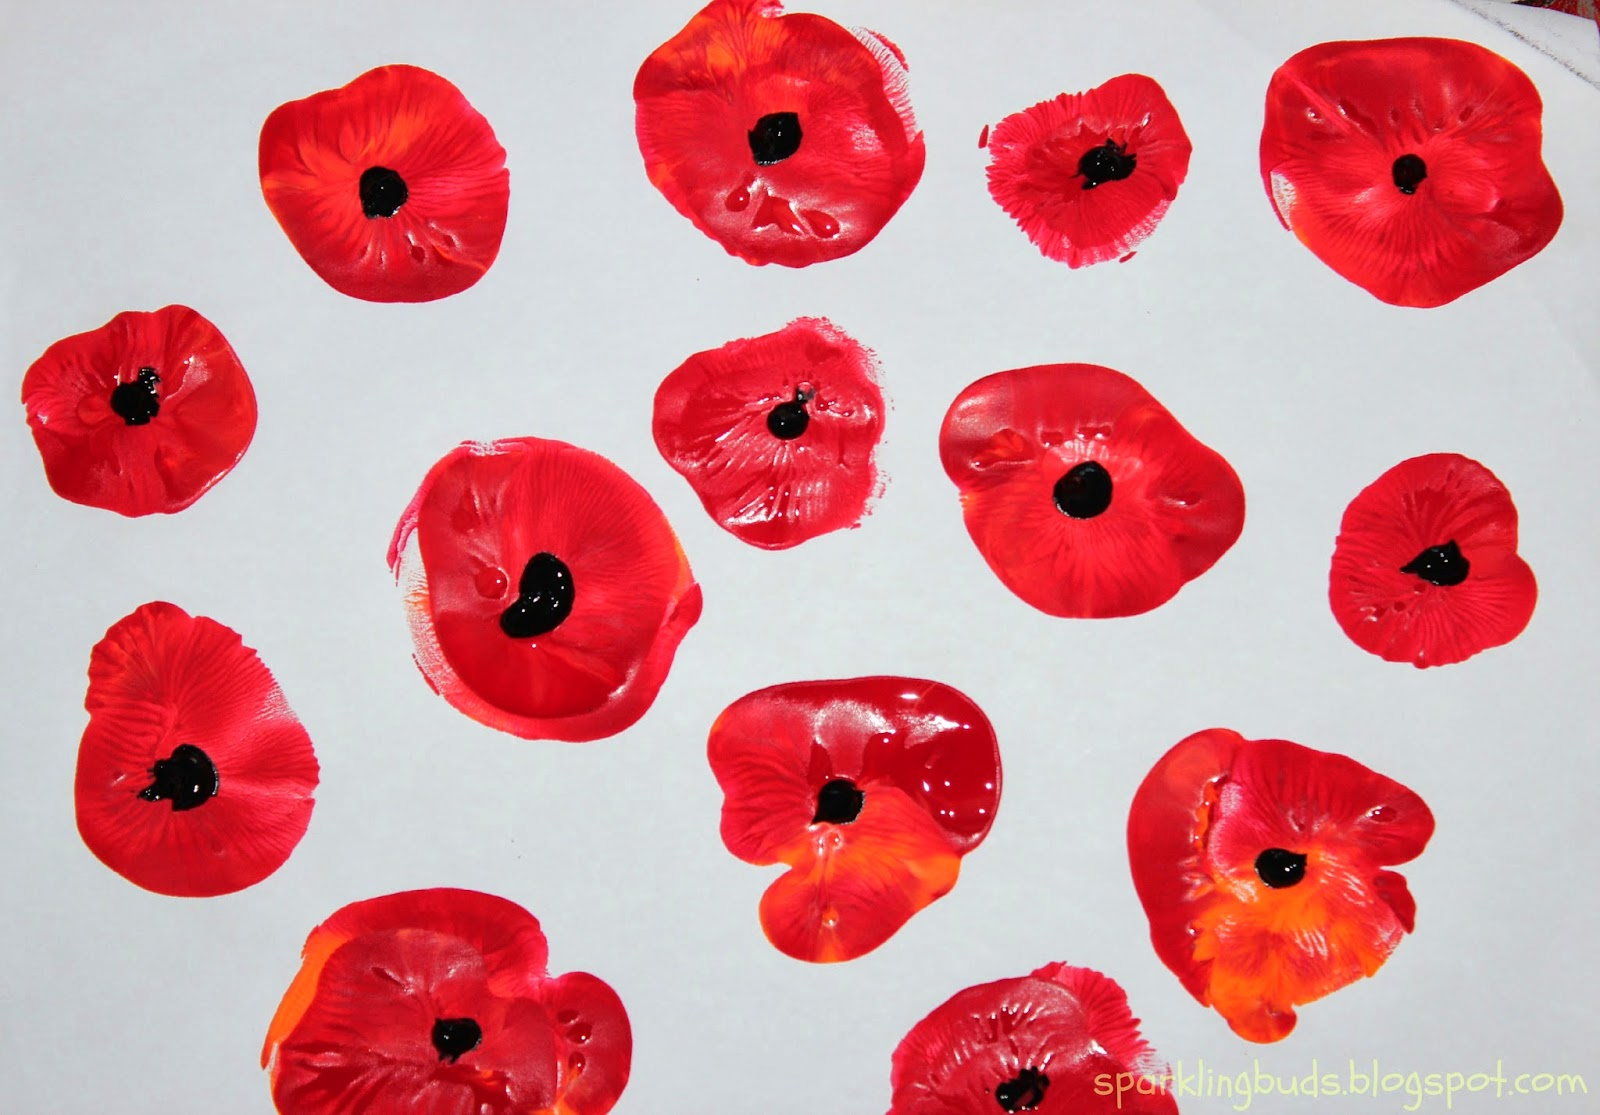 http://sparklingbuds.blogspot.com/2014/03/poppy-flowers-painting-with-kids.html